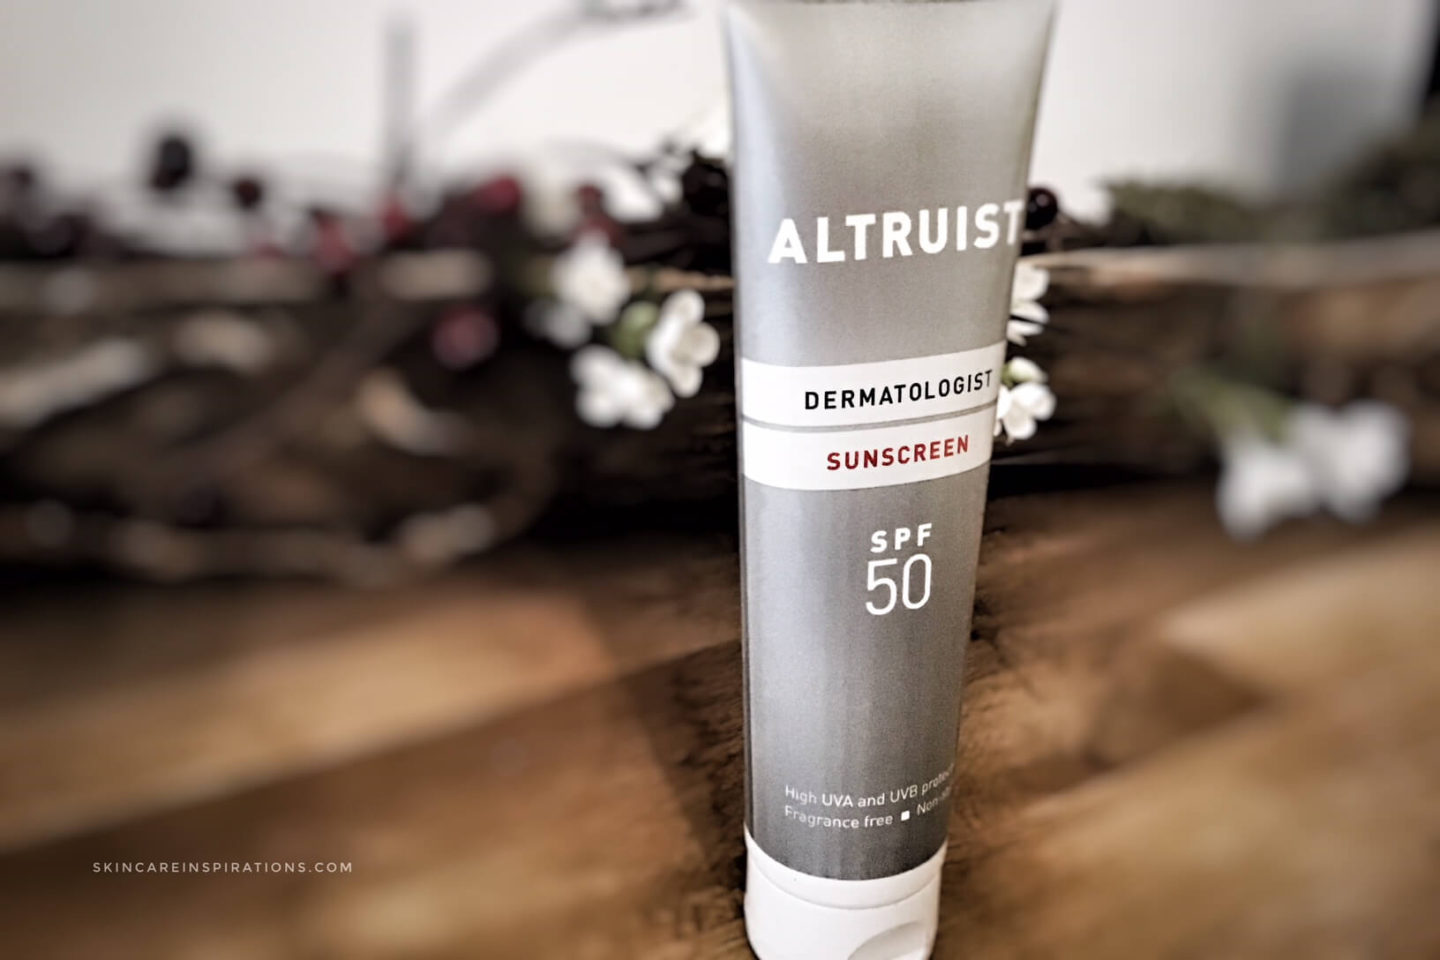 Altruist Sunscreen Review